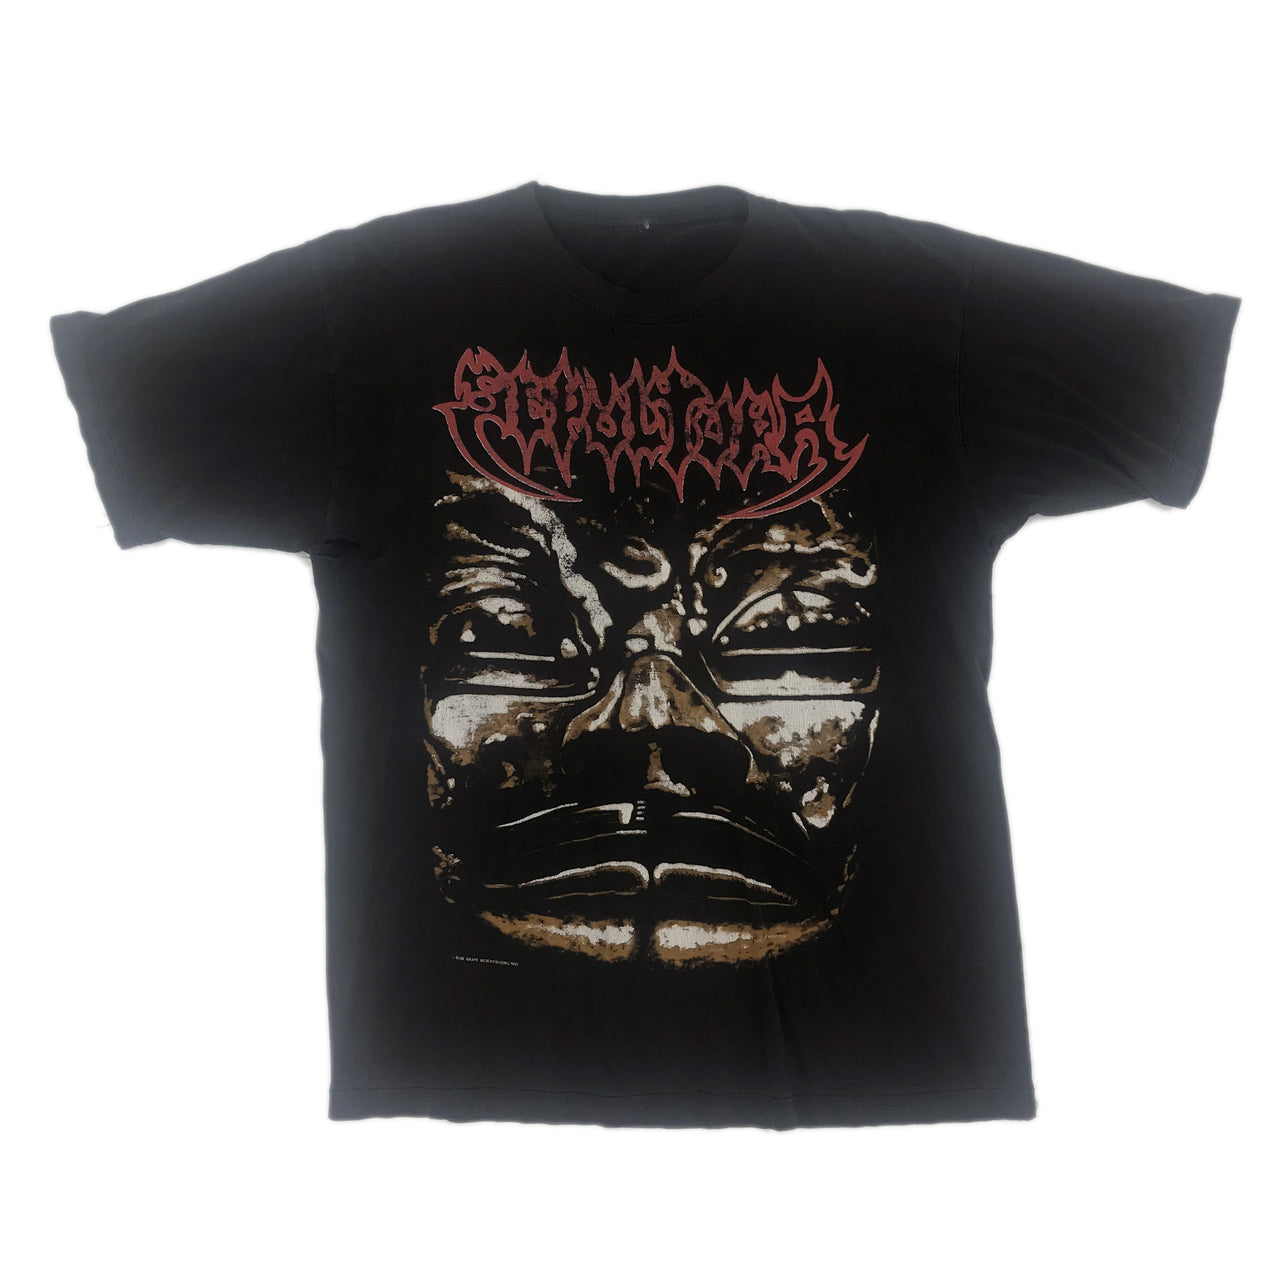 1992 SEPULTURA 'THIRD WORLD POSSE' TOUR TEE